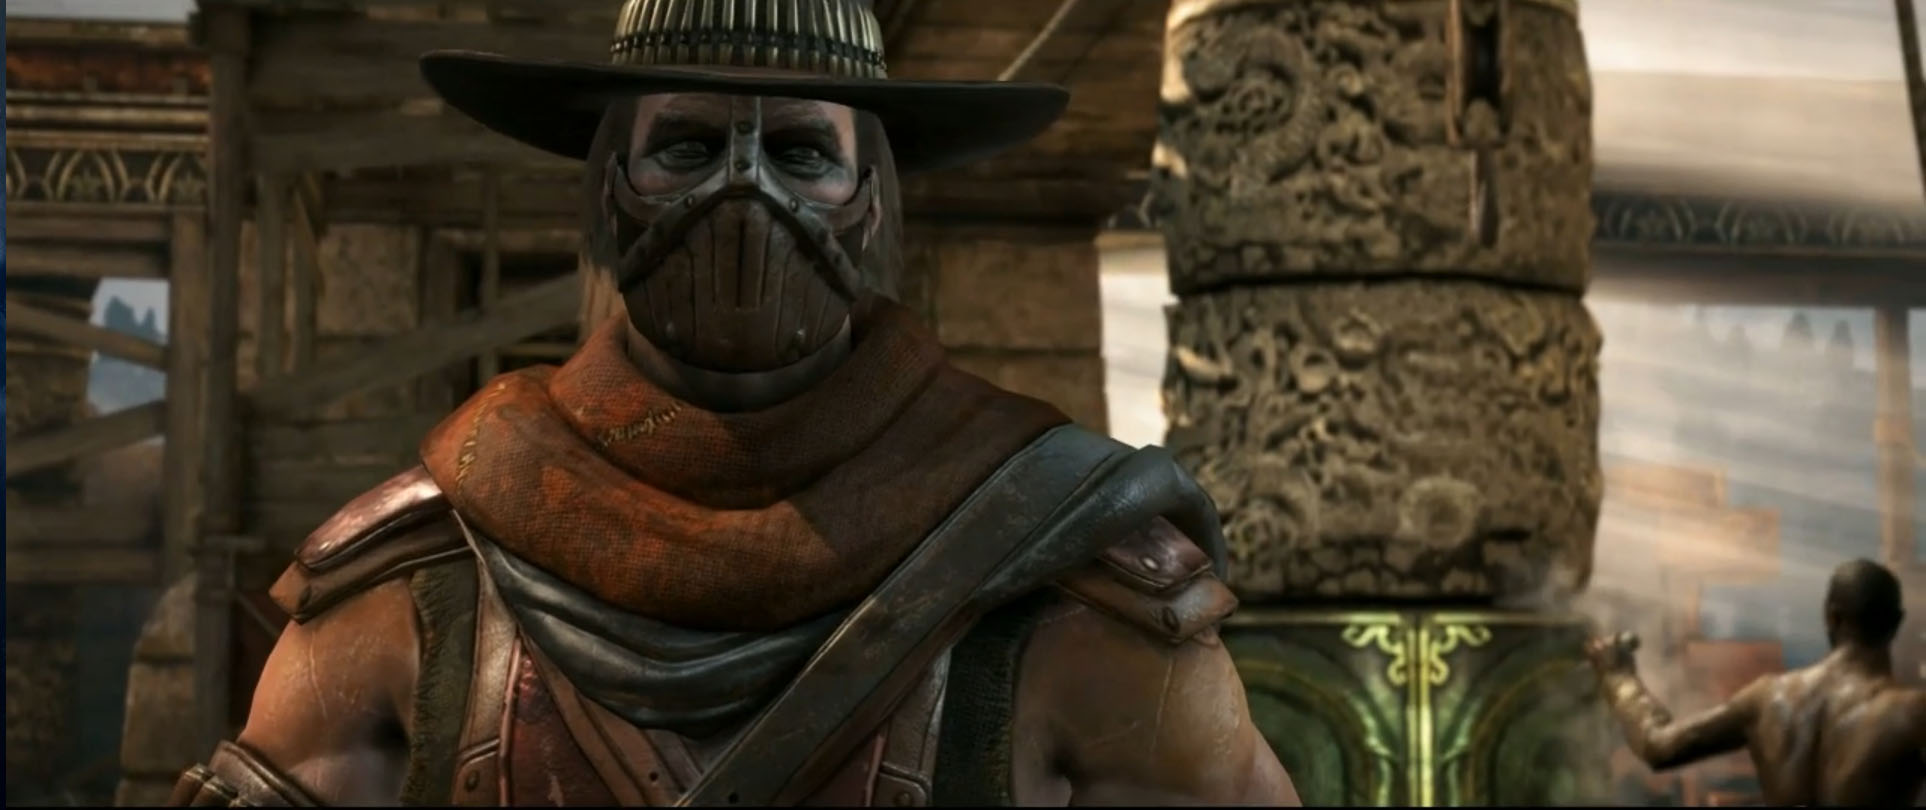 Mortal Kombat X Reveals Erron Black, Liu Kang, and Shinnok